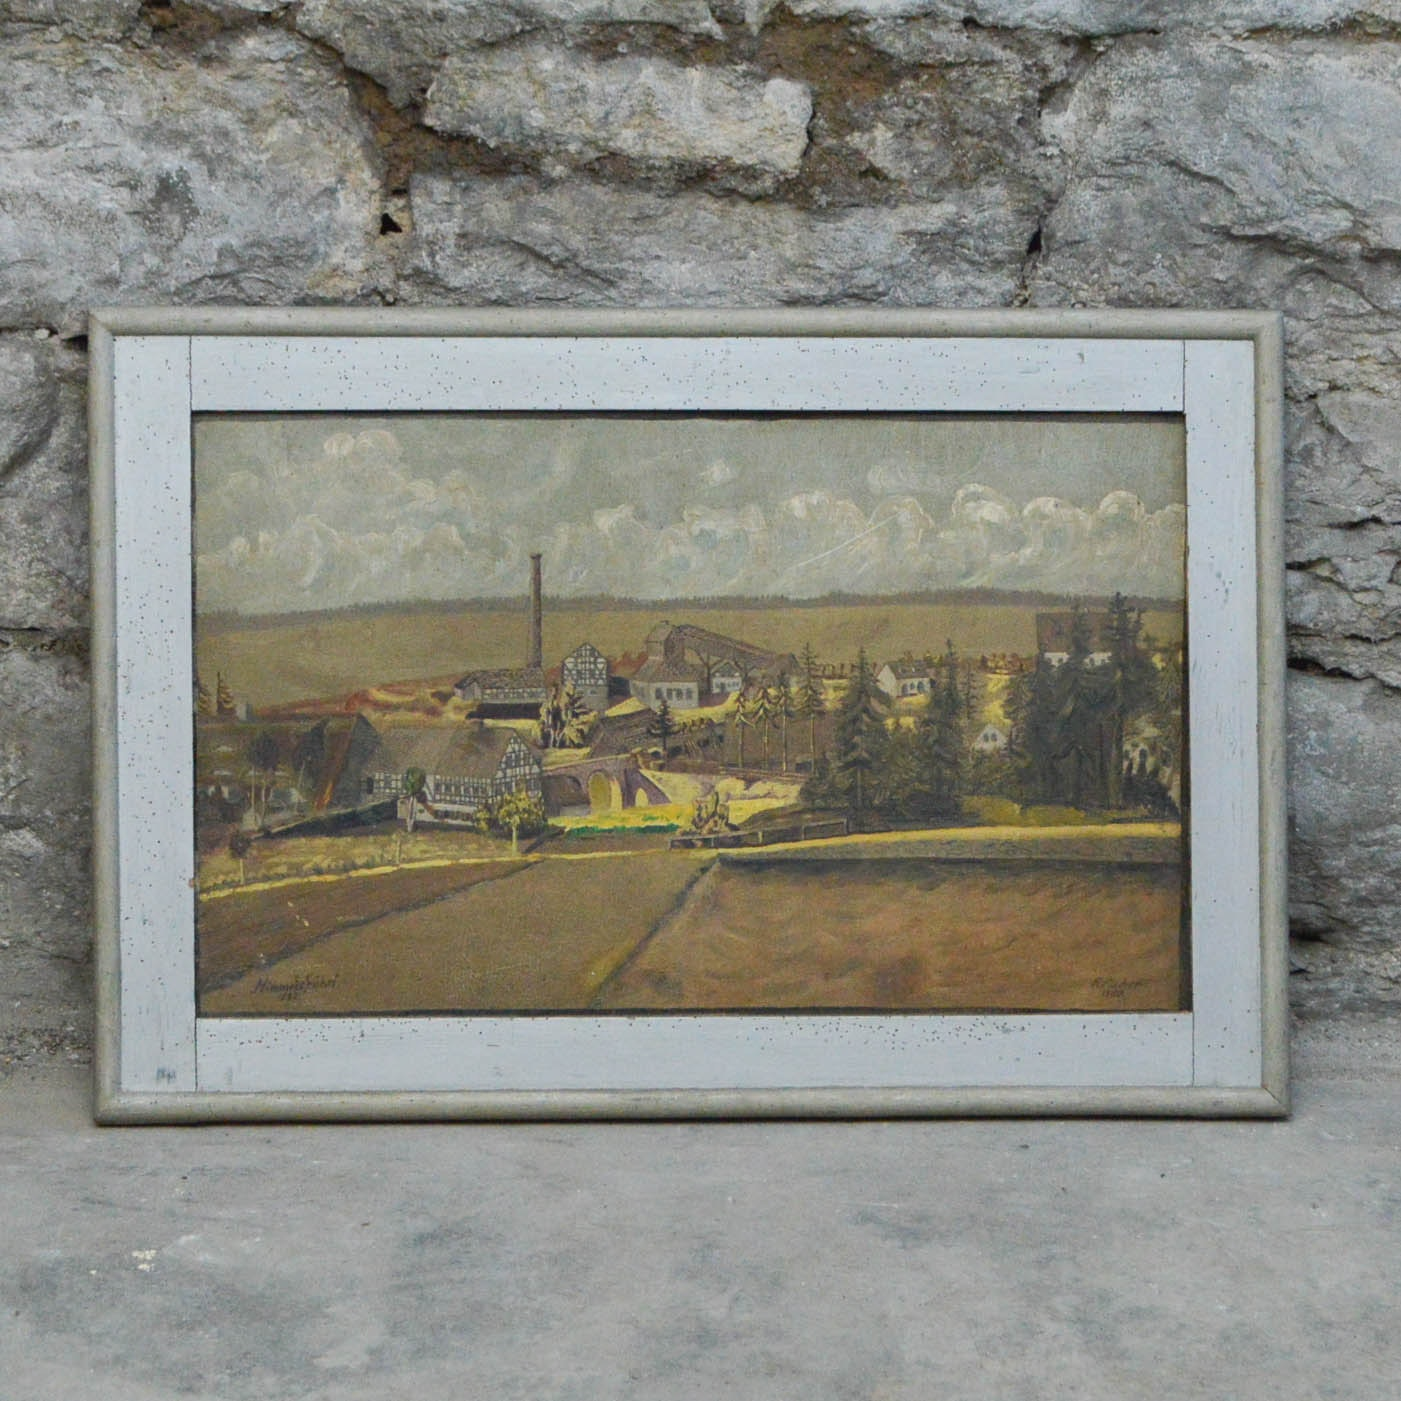 R. Fischer 1930 Oil Painting of Himmelsfürst Mine